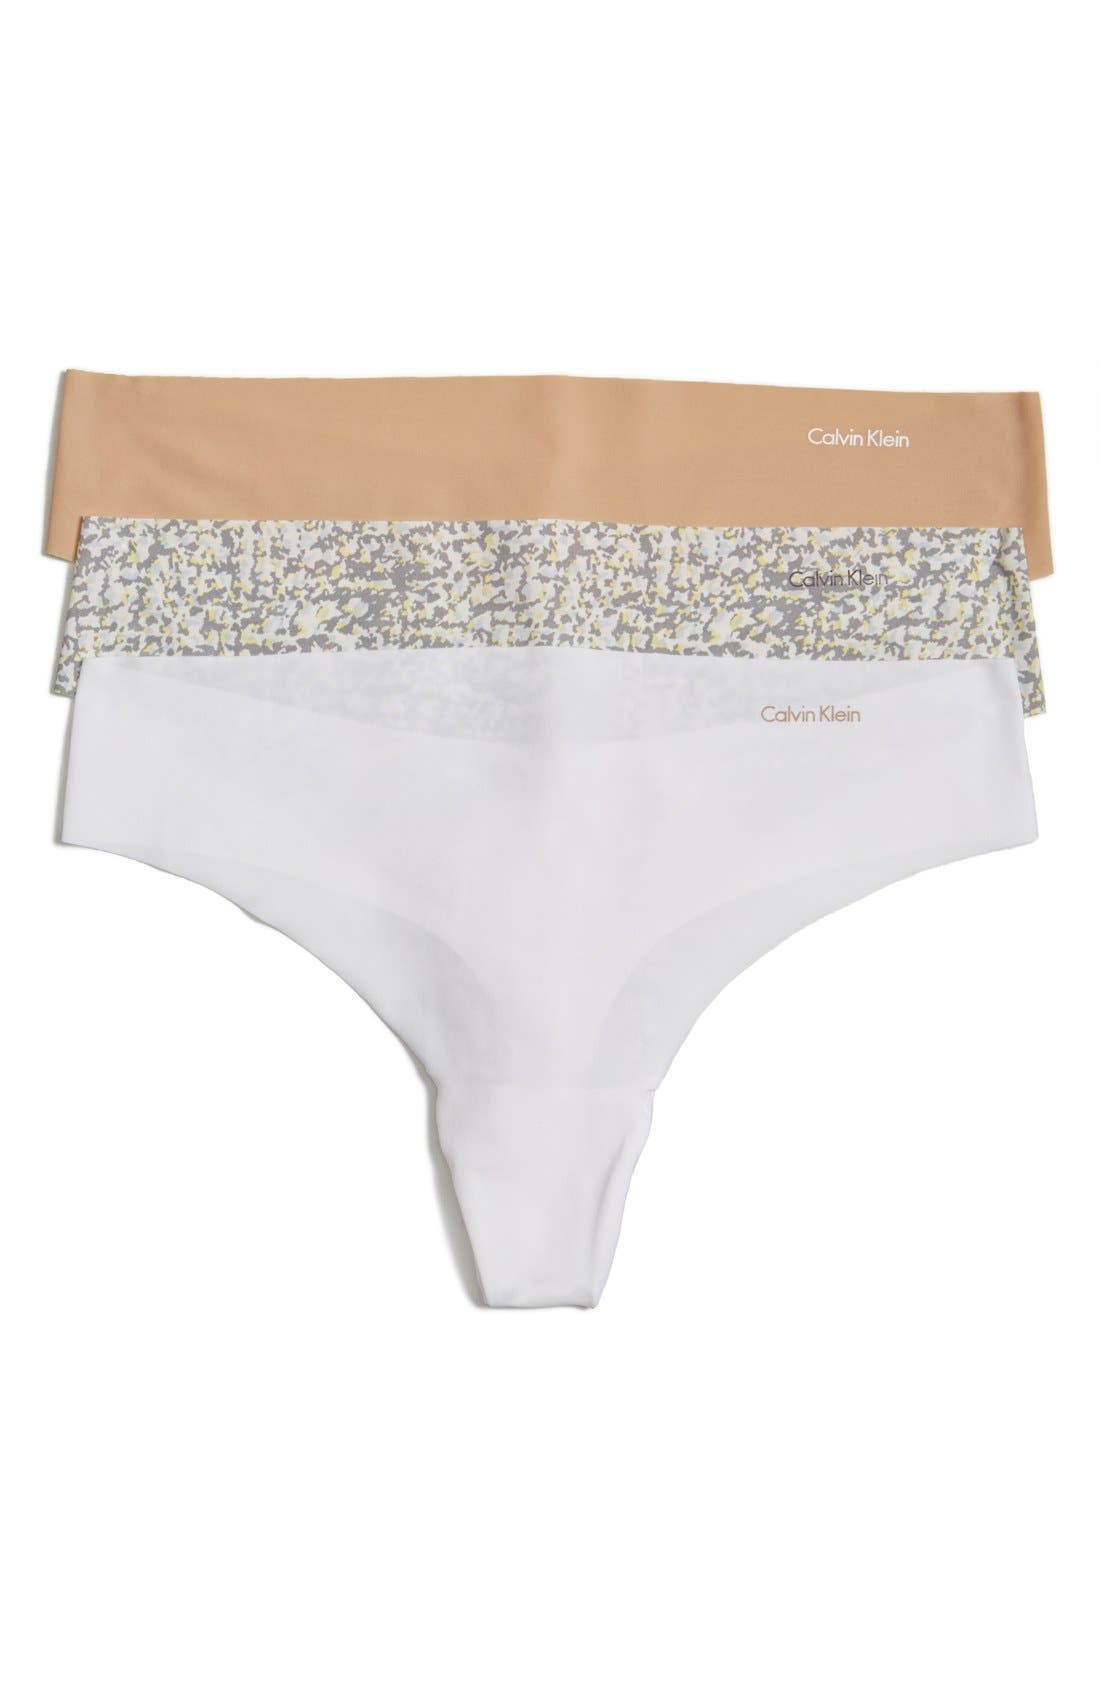 'Invisibles' Thong,                         Main,                         color, Bare/ Kinetic/ White